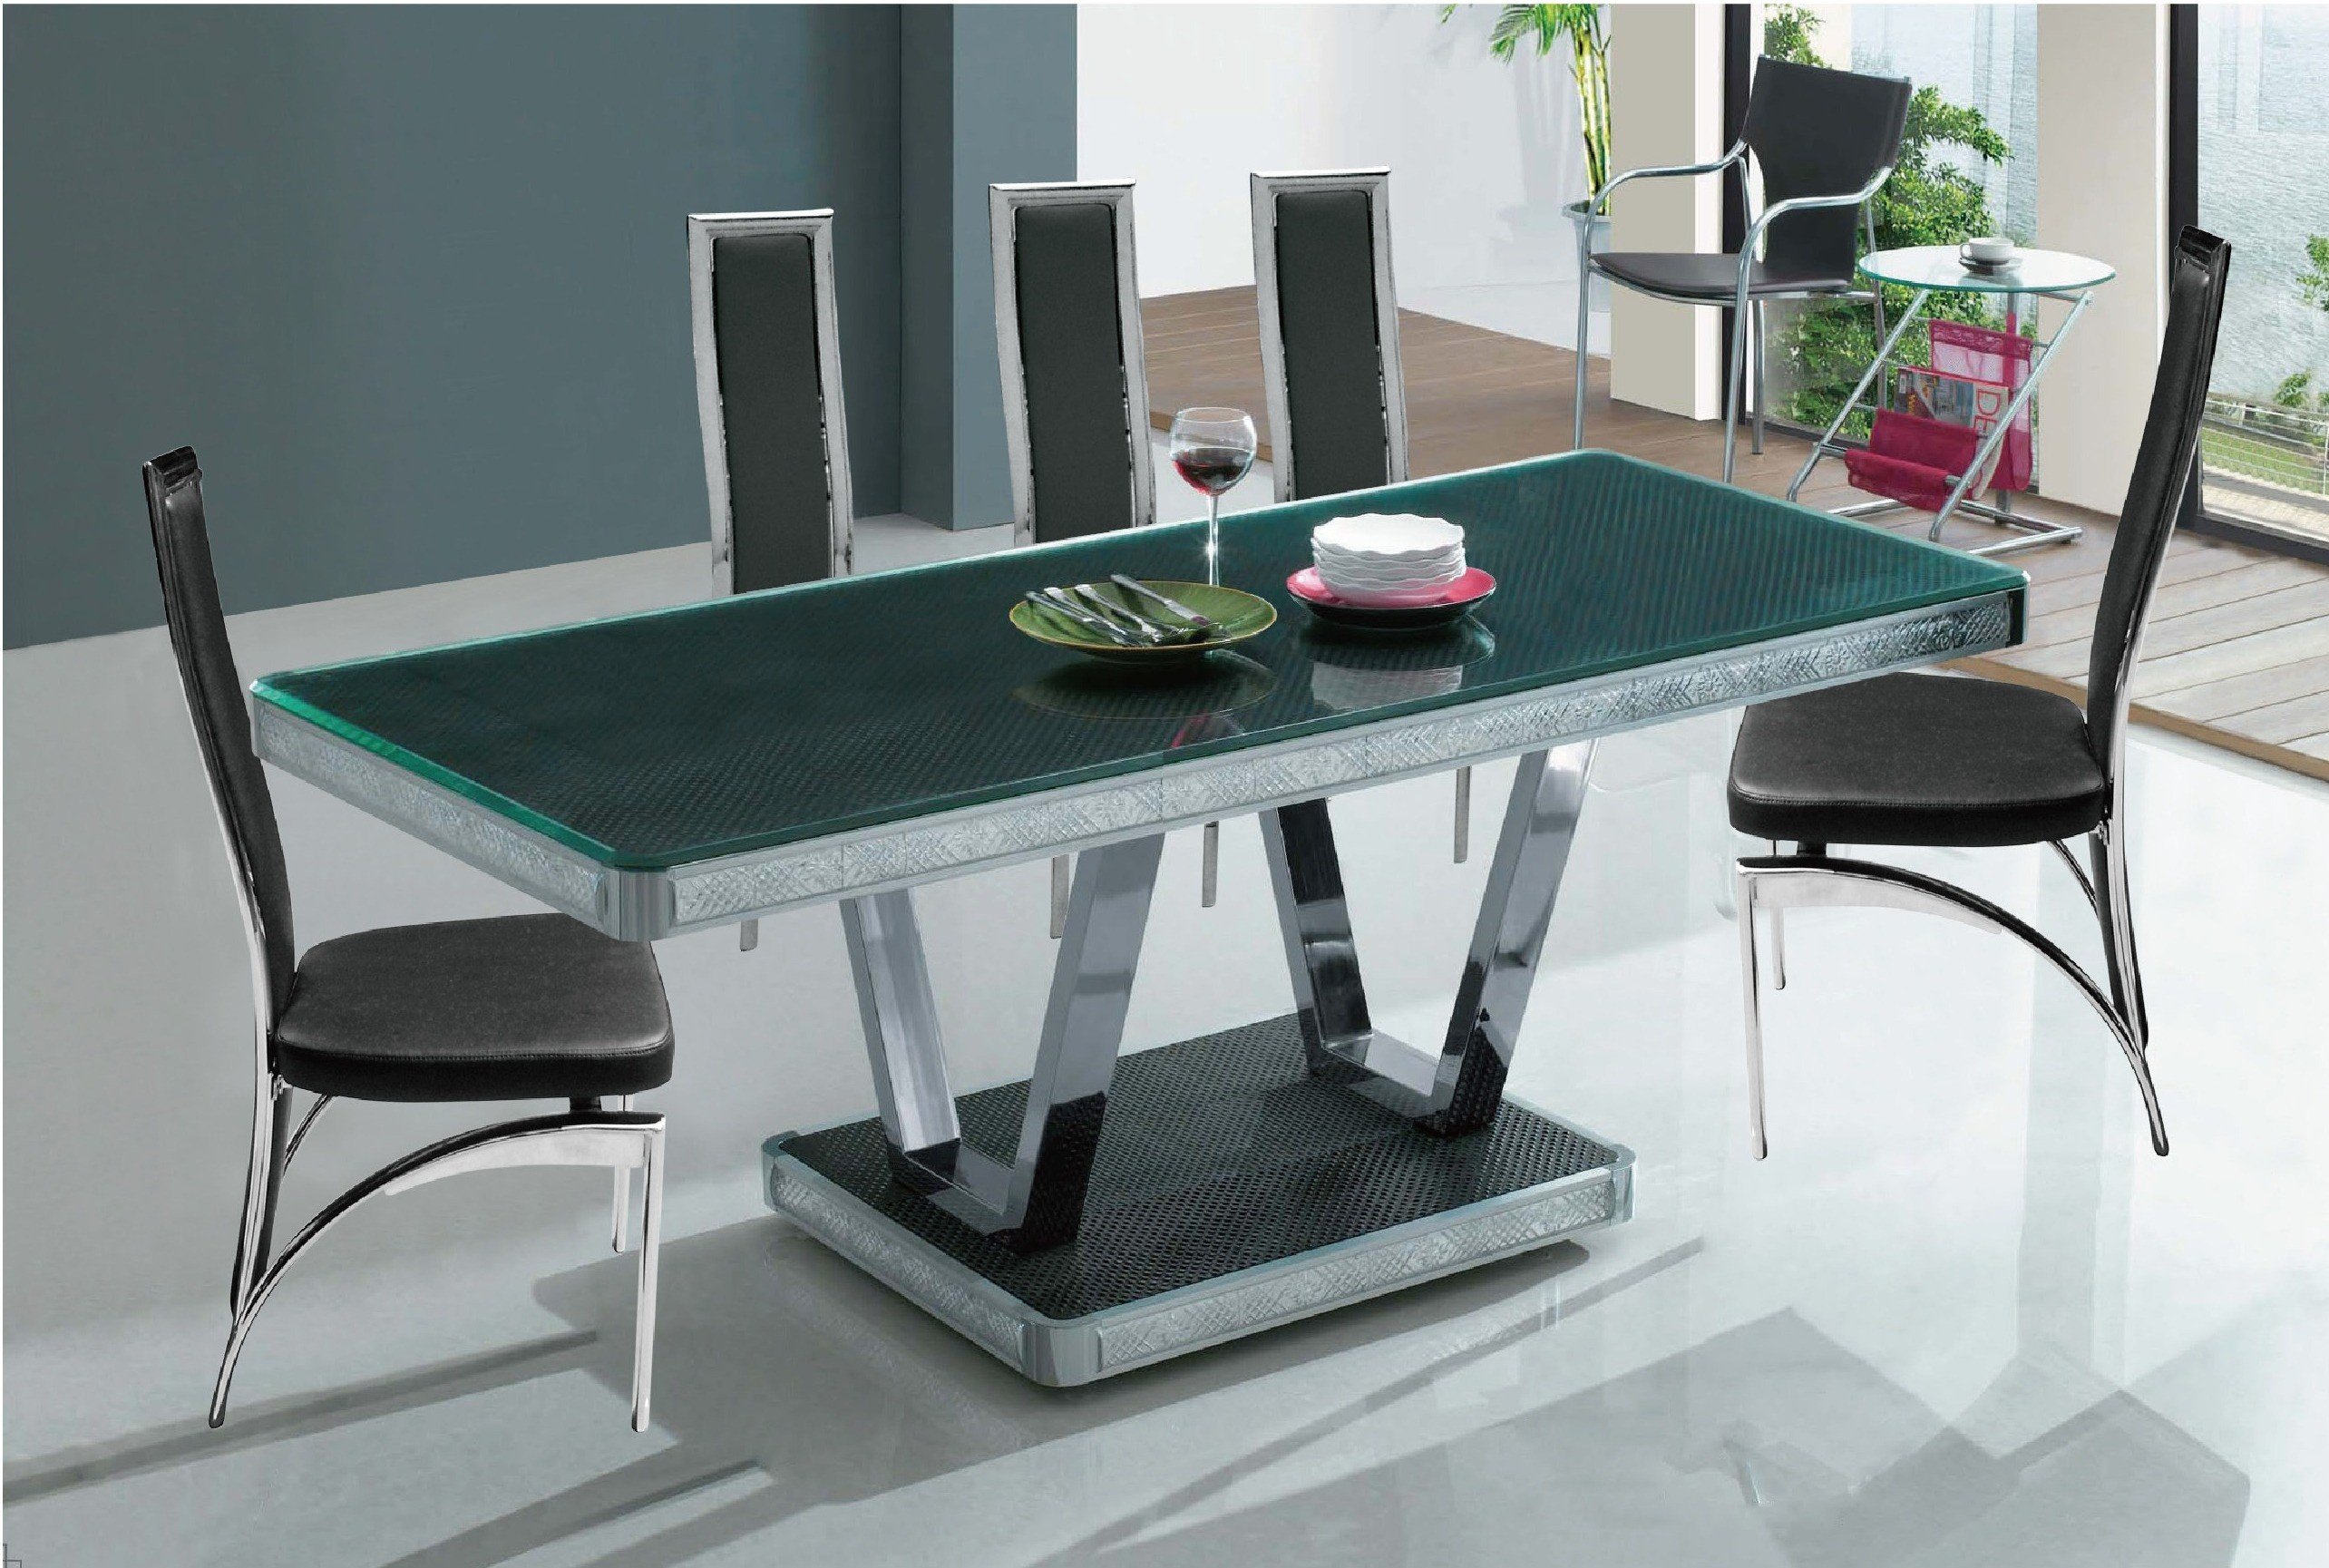 Top Dining Table Design 2568 x 1729 · 688 kB · jpeg